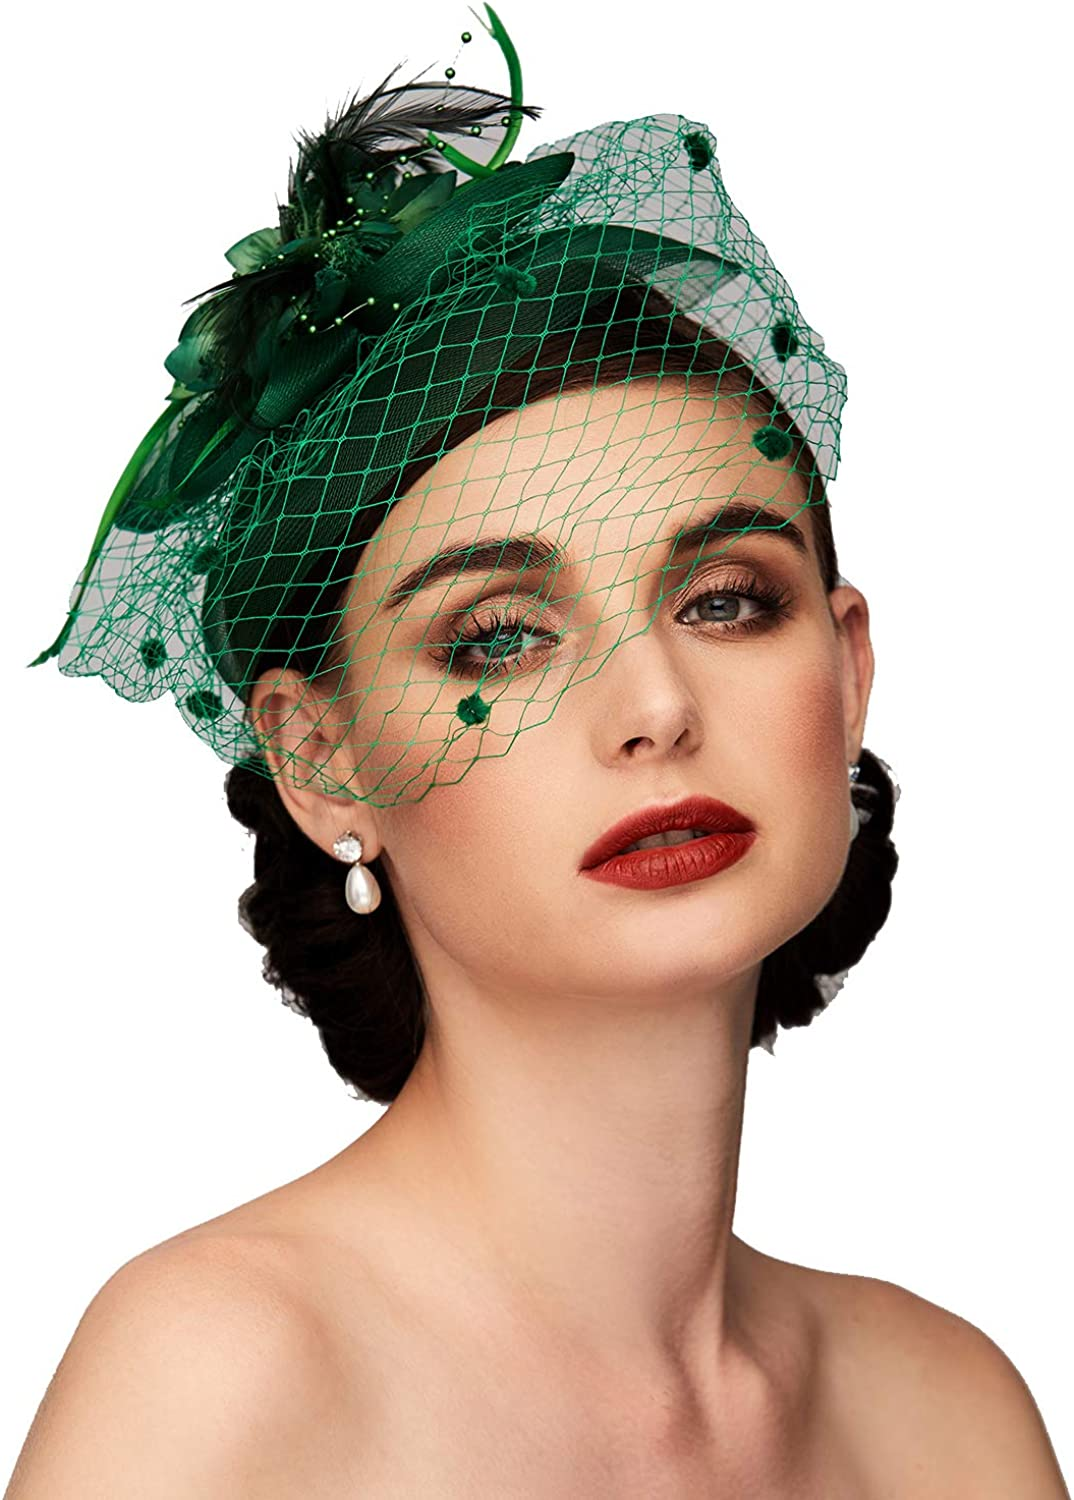 Feather Net Kentucky Derby Hat Fascinators Headpiece Wedding Special Occasion with Birdcage Veil Floral Flower (Green)